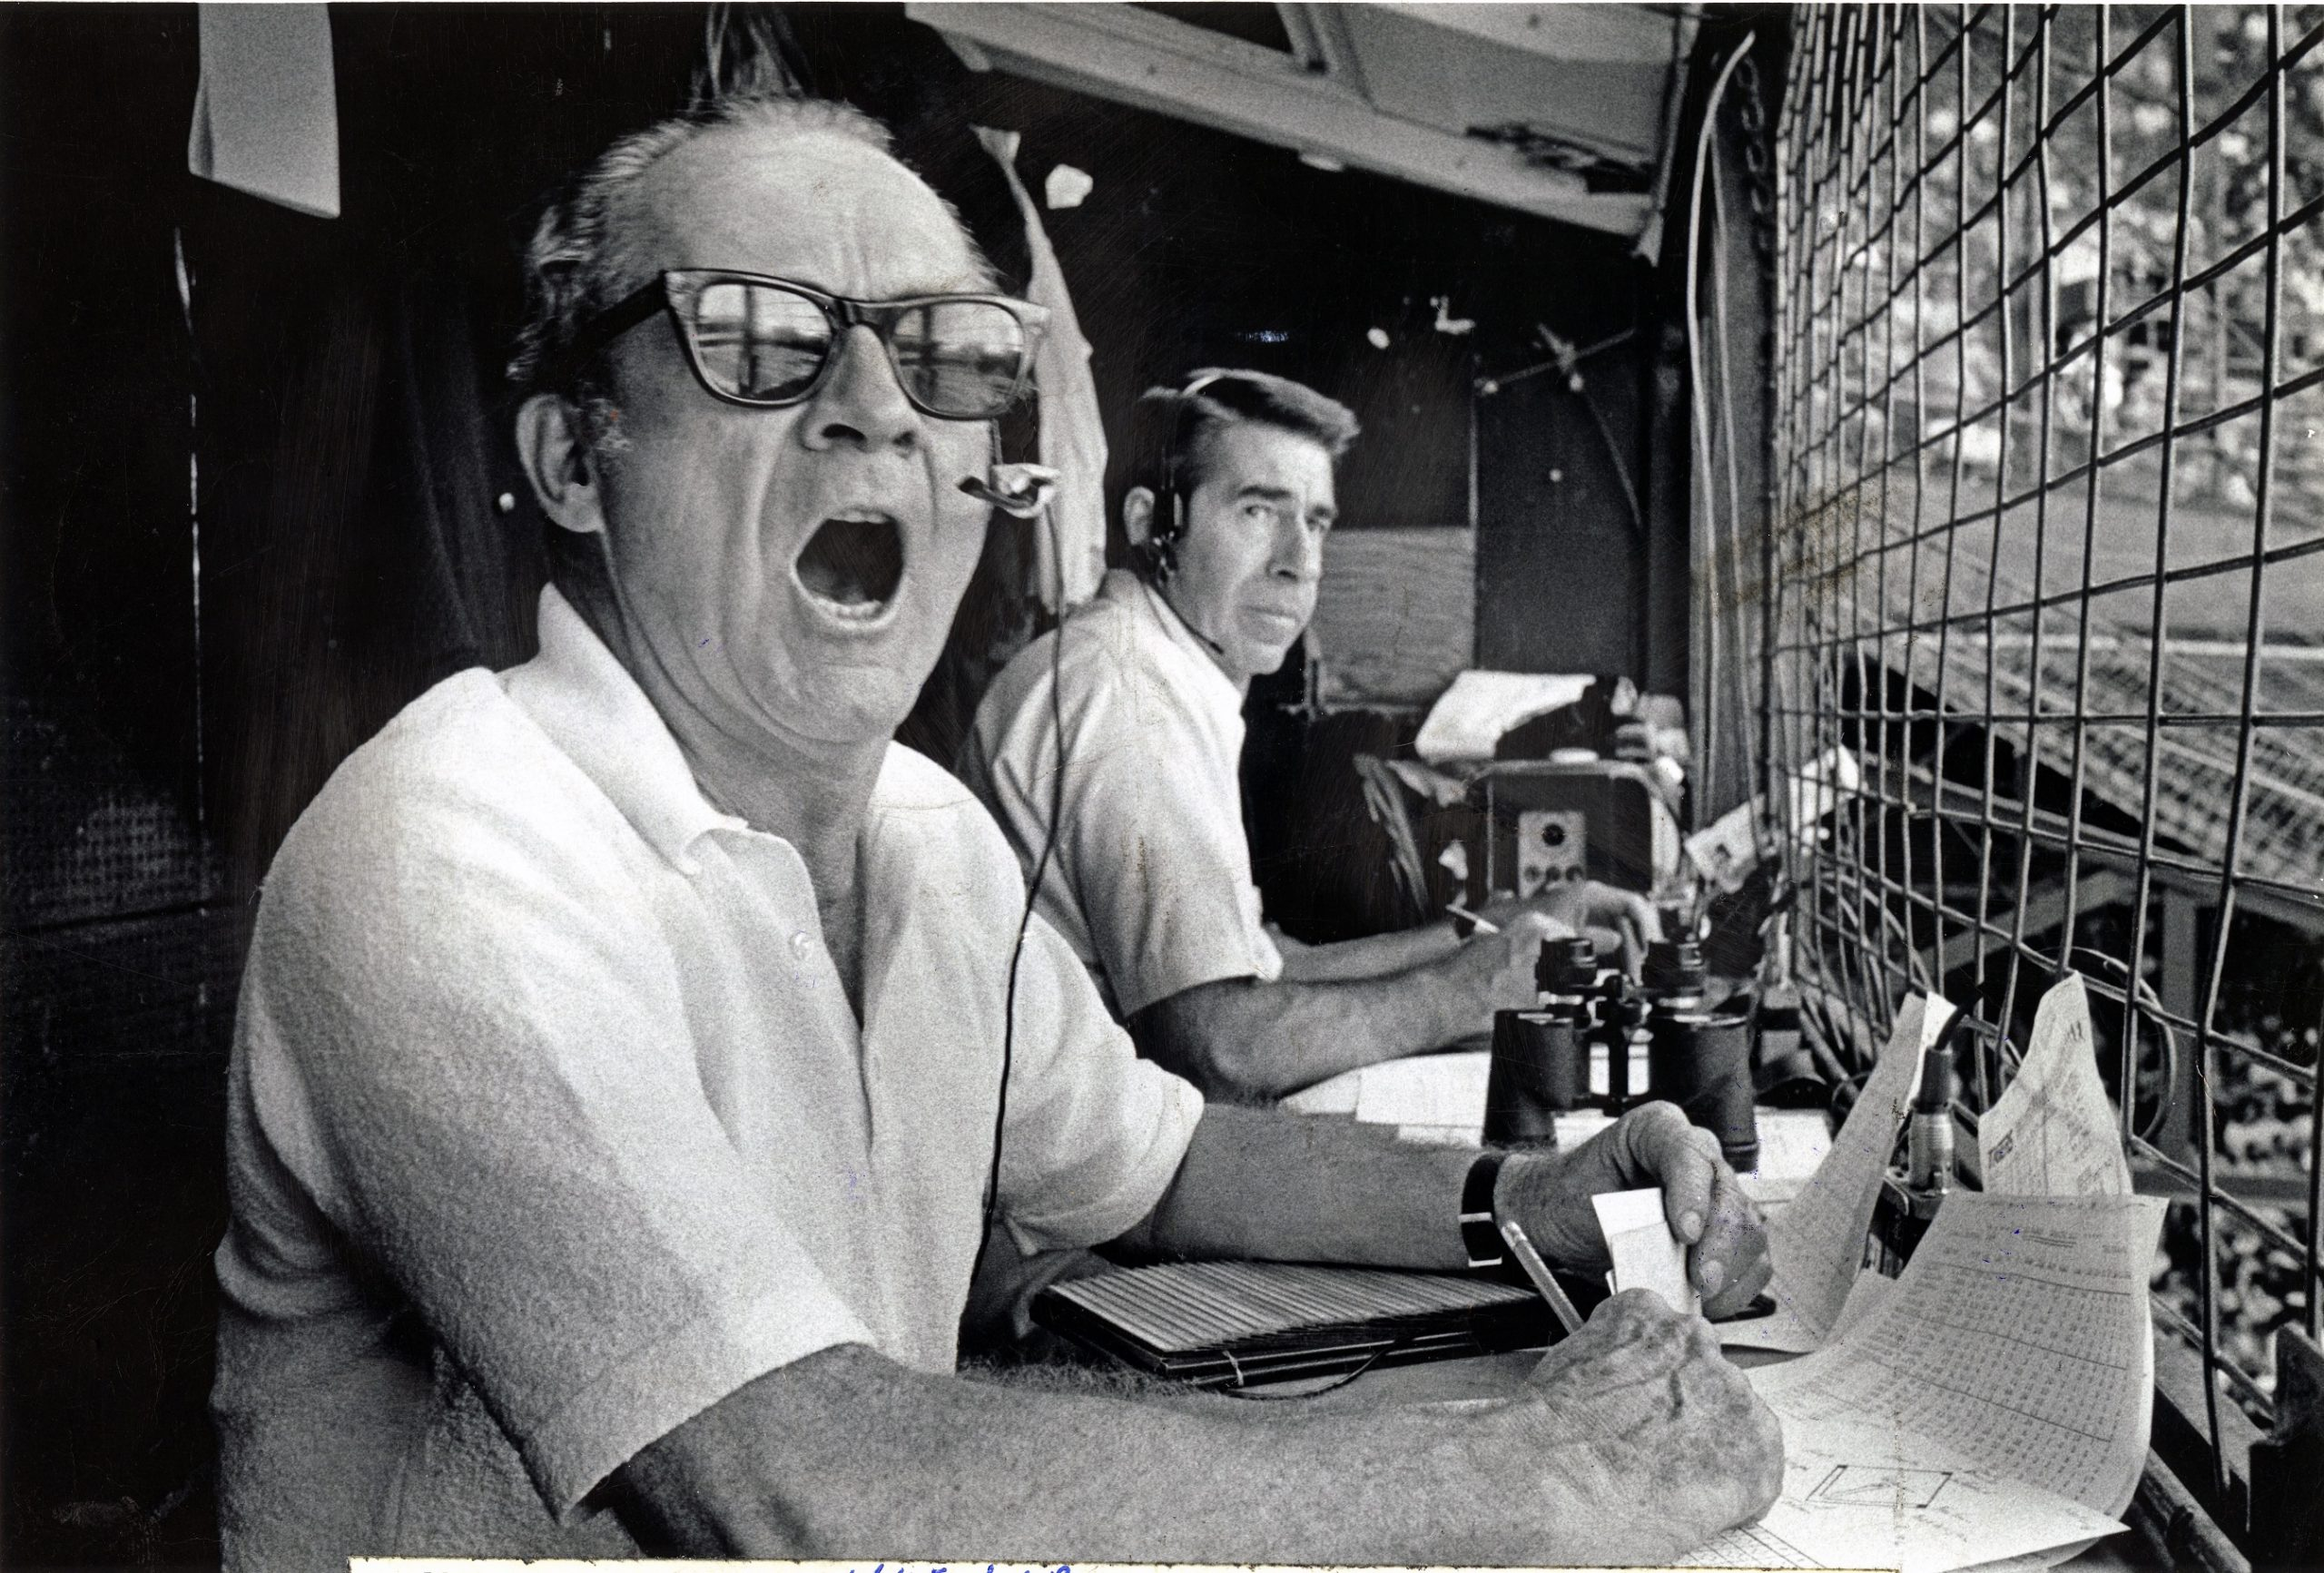 Ernie Harwell and Paul Carey Commentating in sports